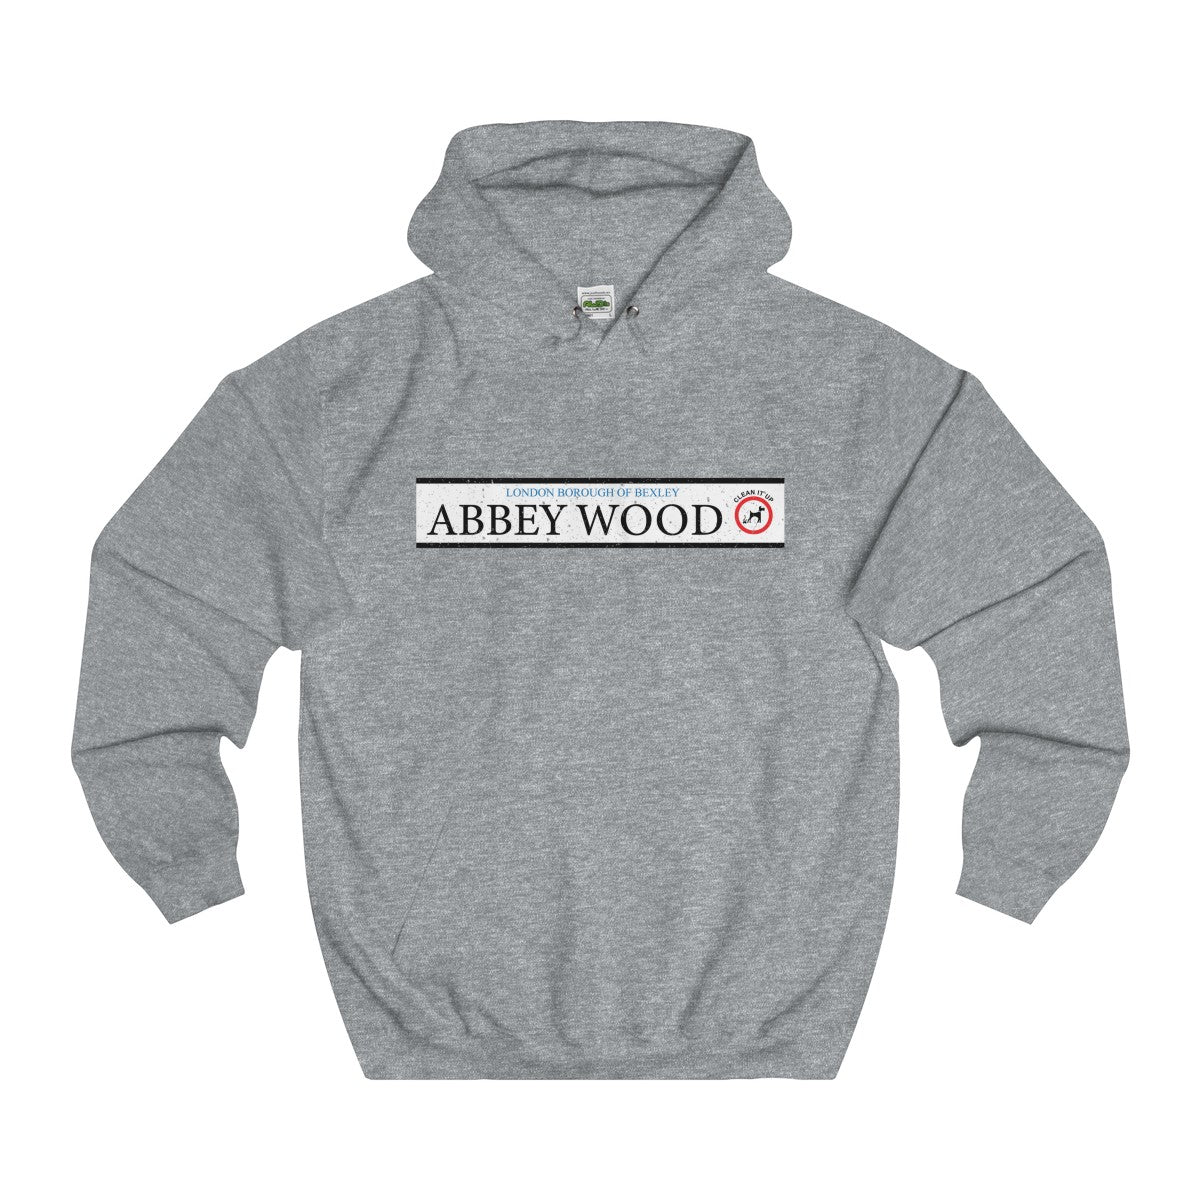 Abbey Wood Road Sign Hoodie